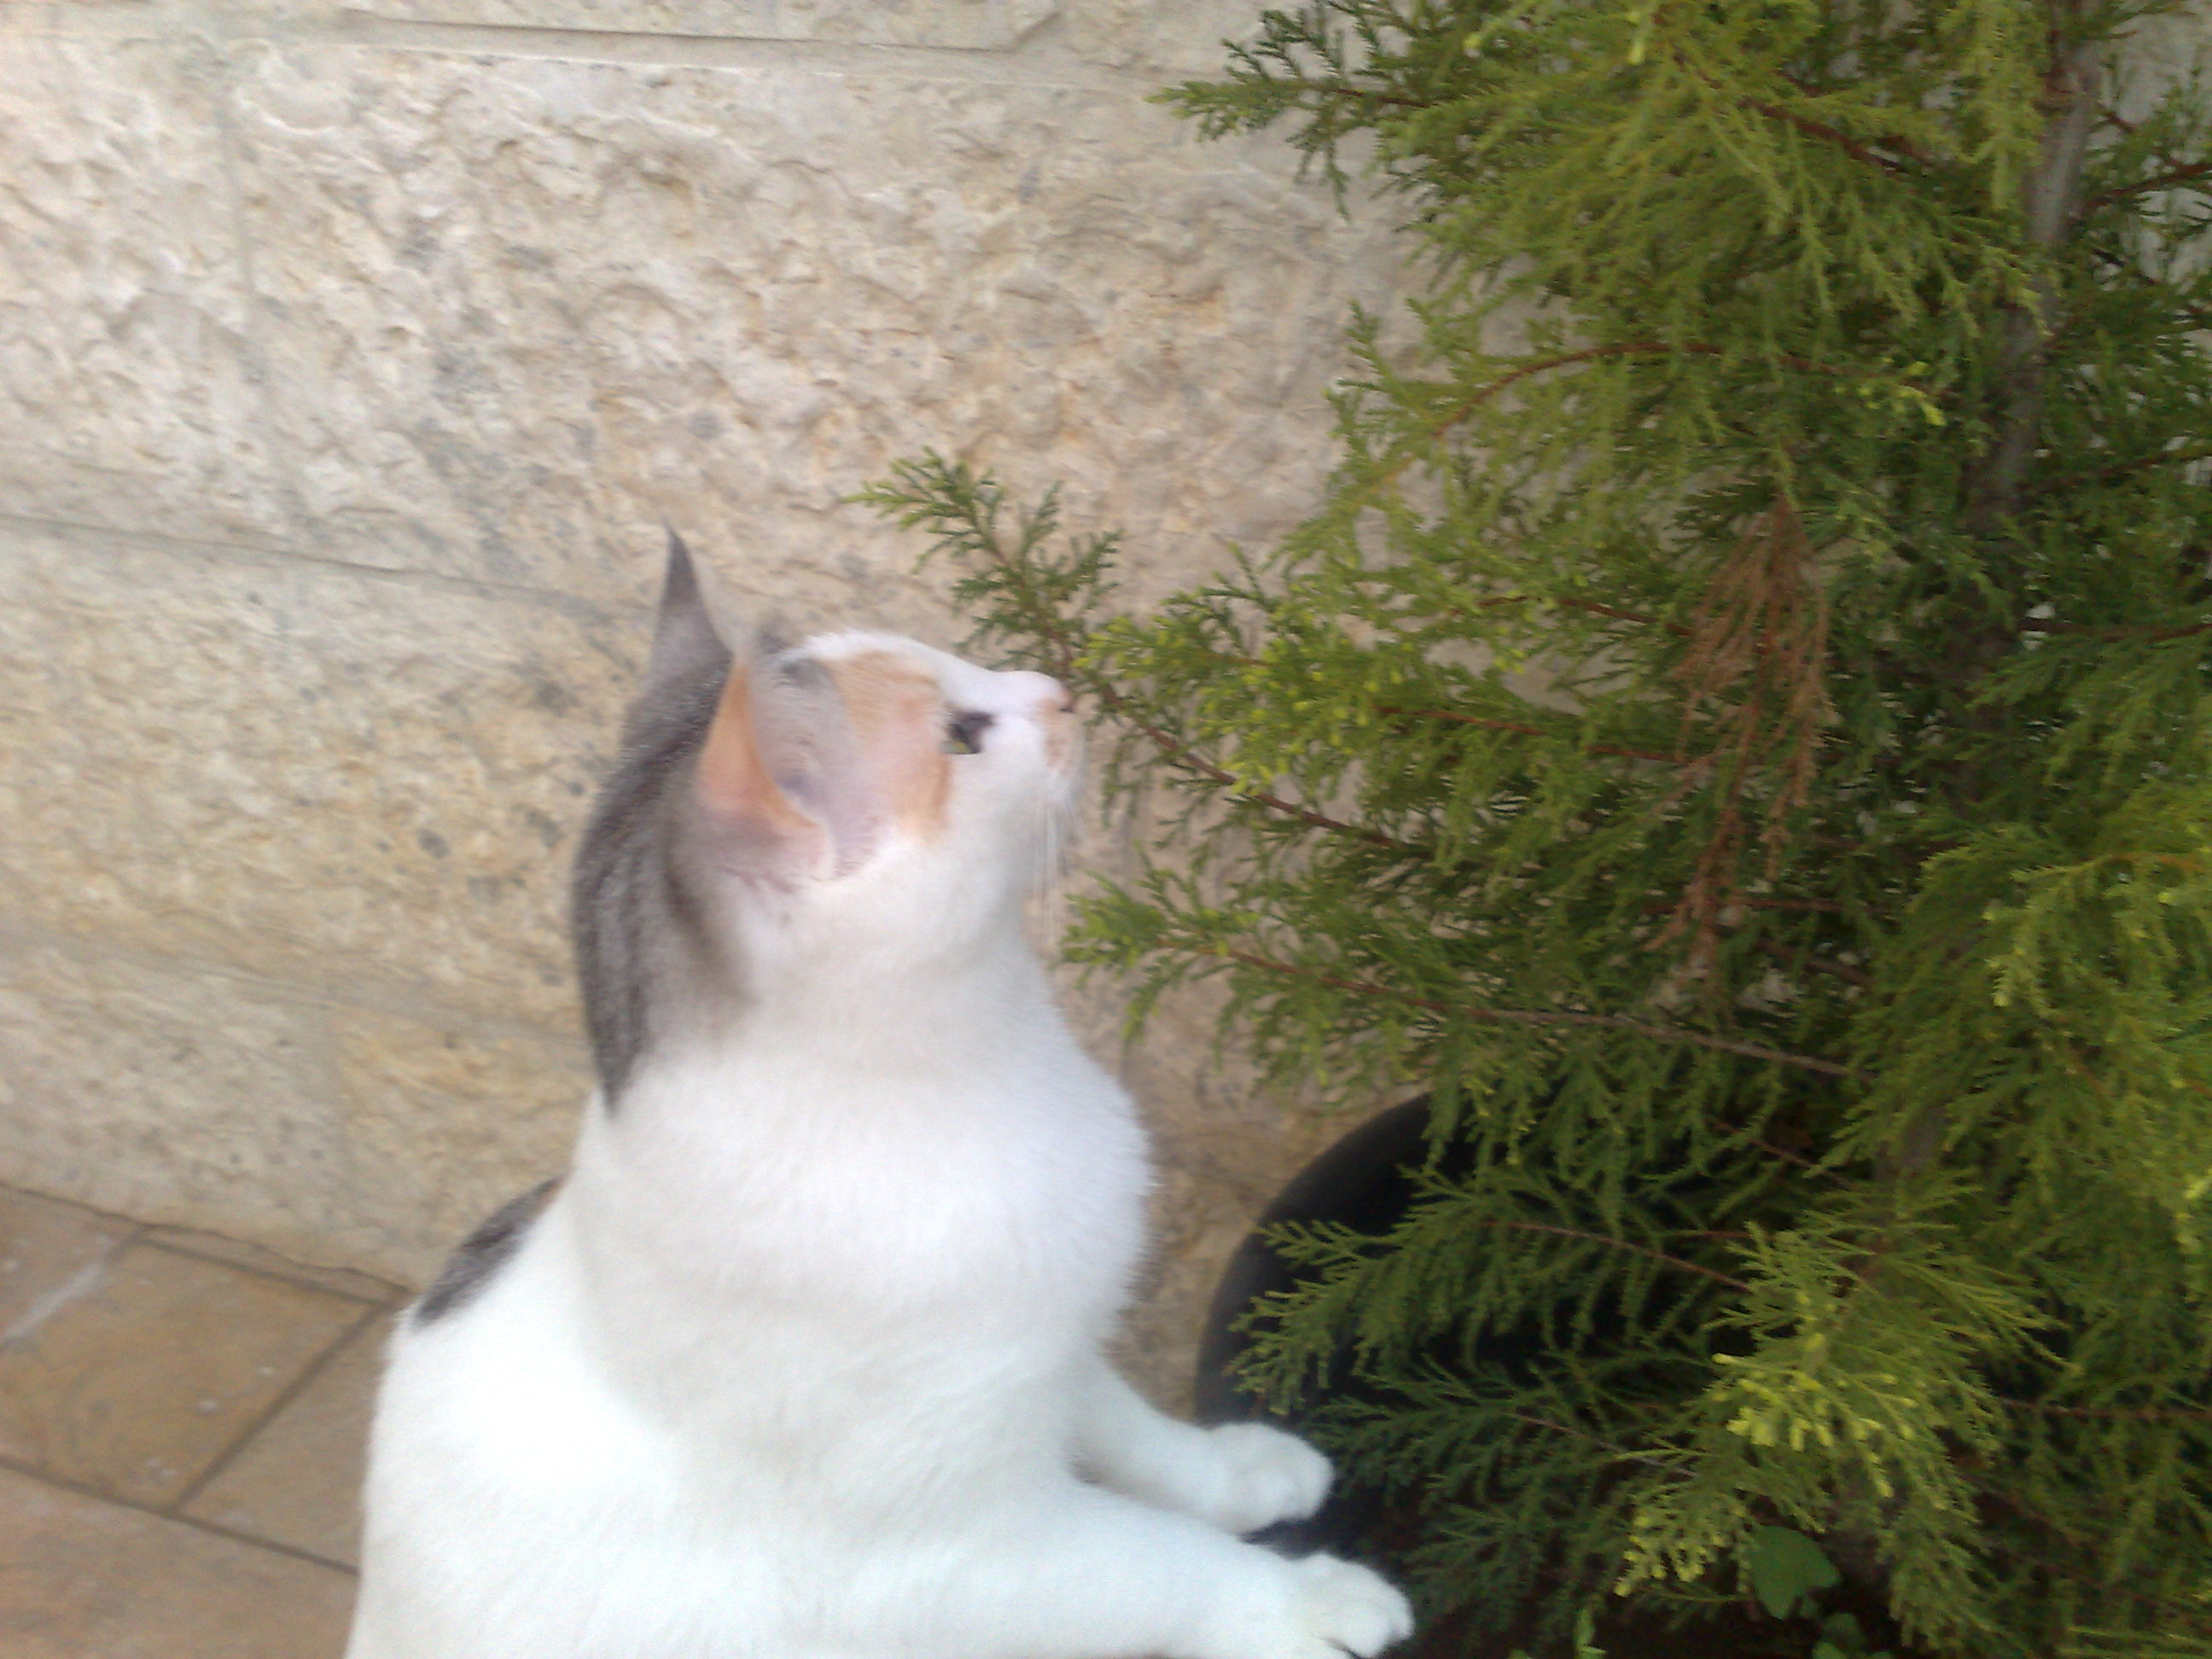 the time for tasting tasty evergreens